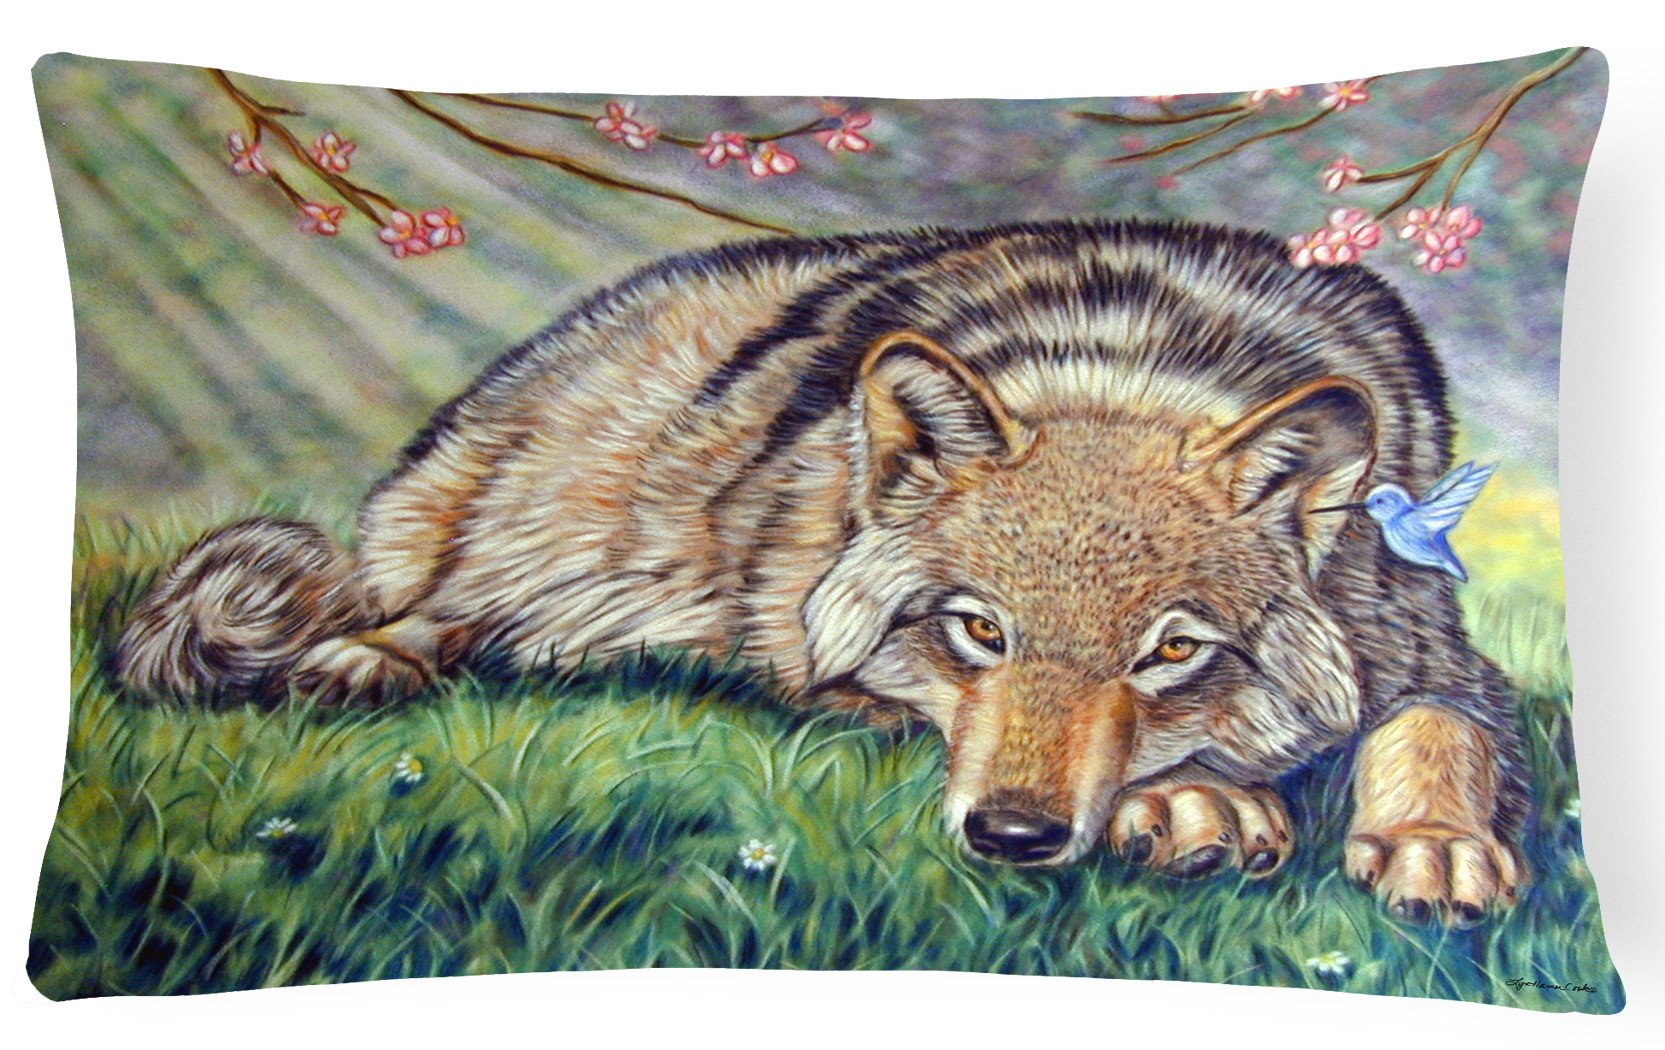 Wolf and Hummingbird Fabric Decorative Pillow 7356PW1216 by Caroline's Treasures